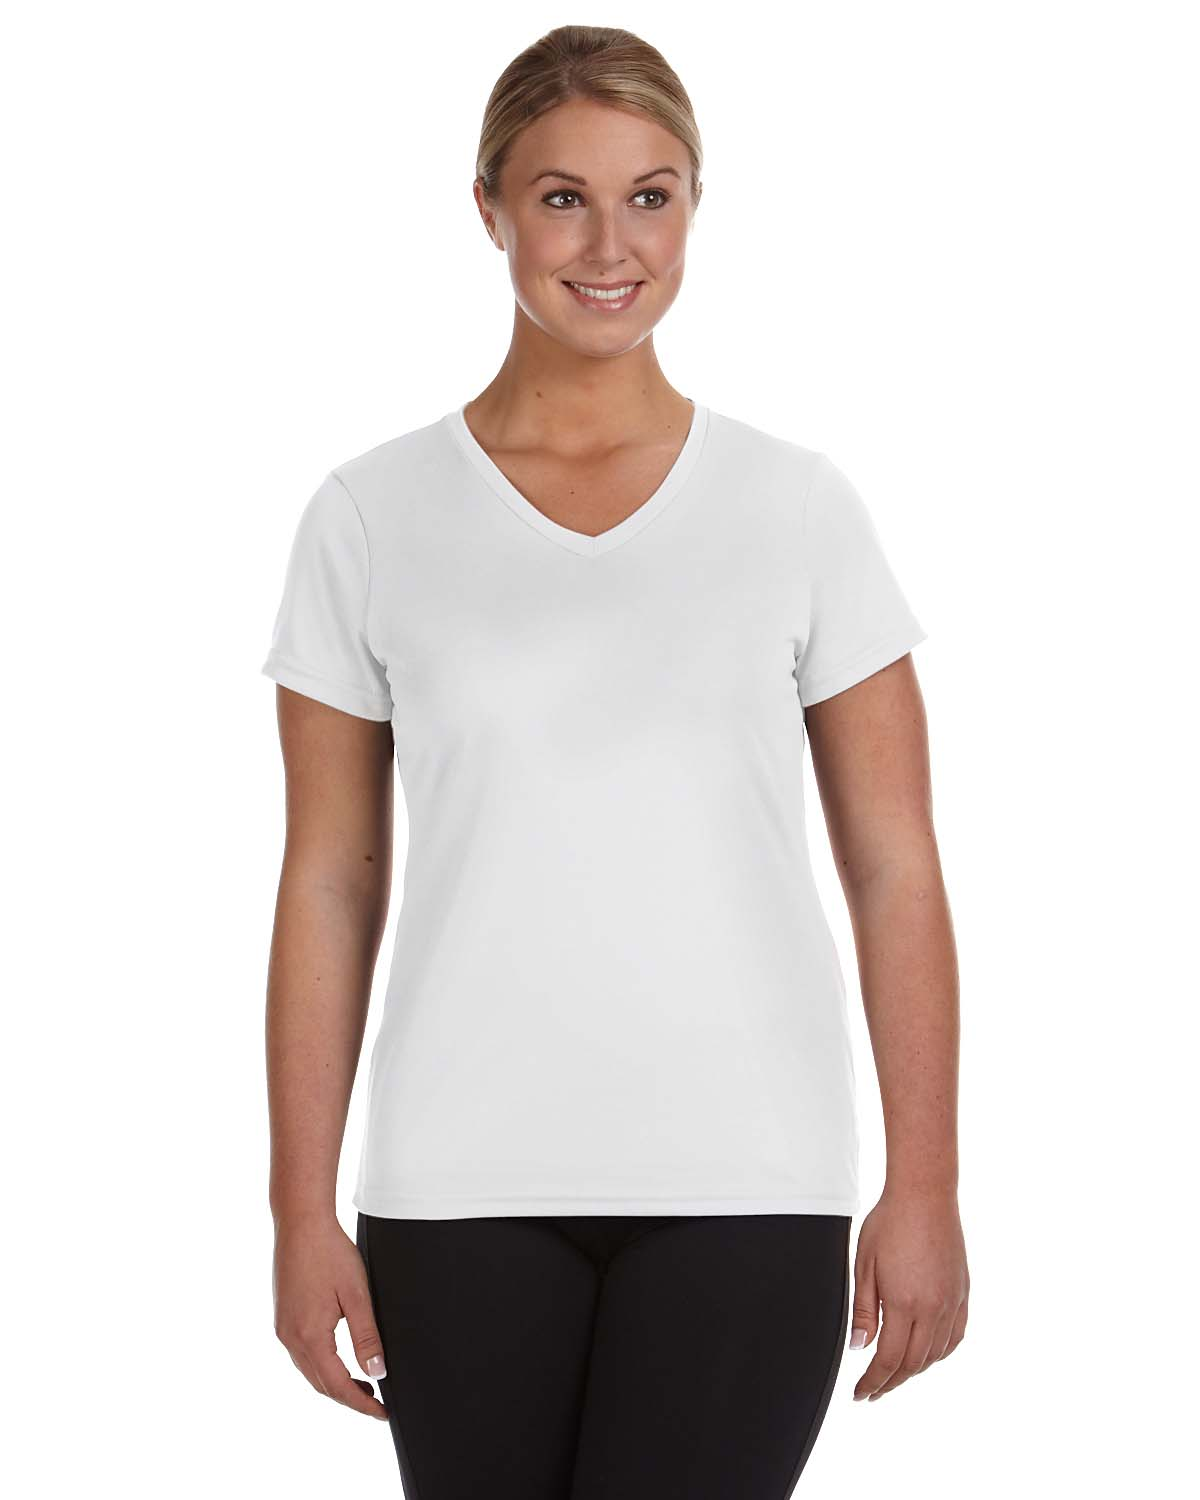 Augusta Sportswear 1790 Ladies' Moisture-Wicking V-Neck T-Shirt